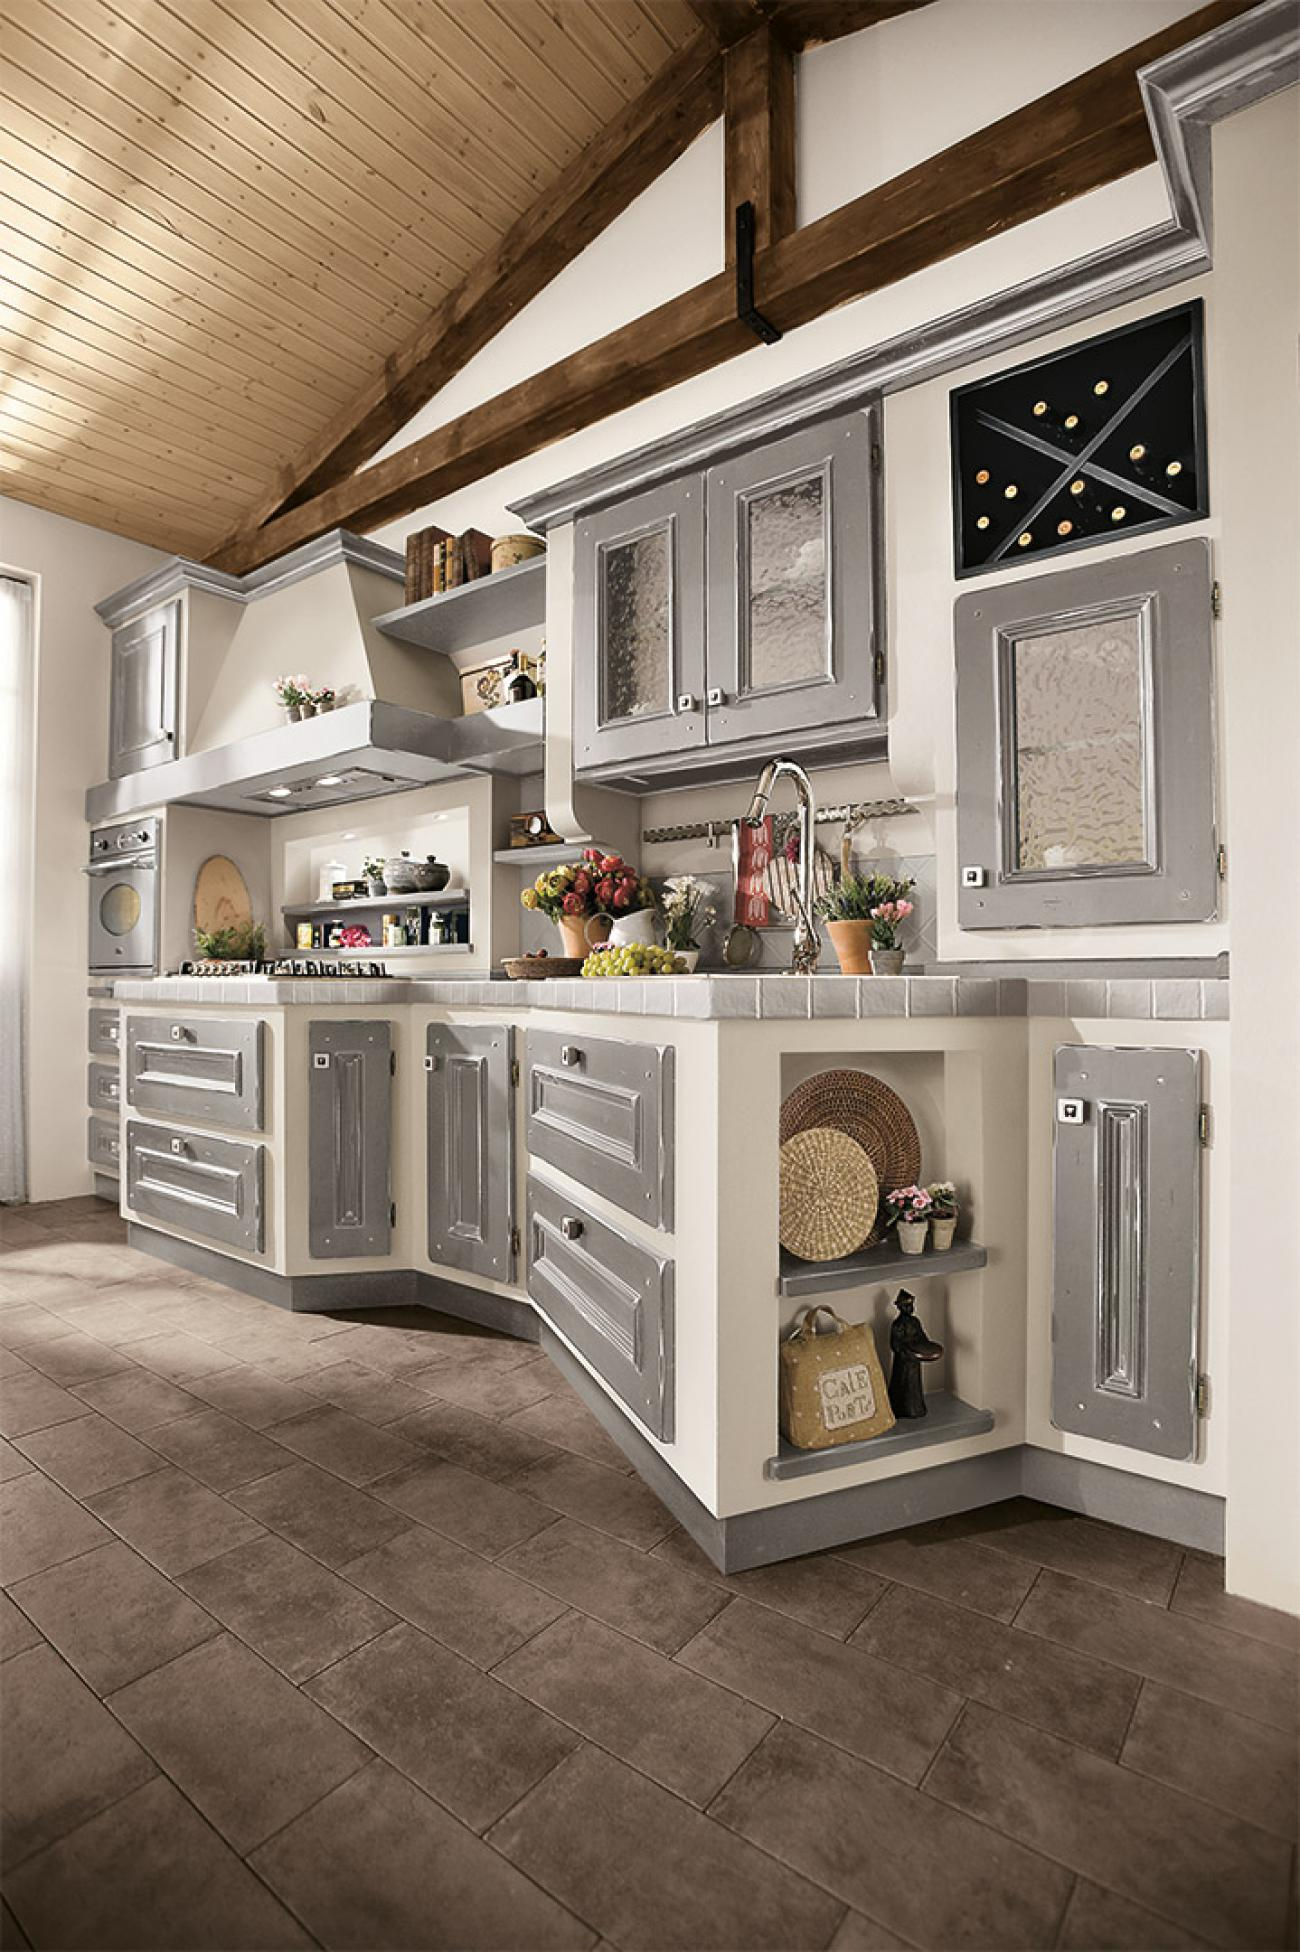 Borgo Antico Kitchens - Beatrice - Clay lacquered with ivory shades